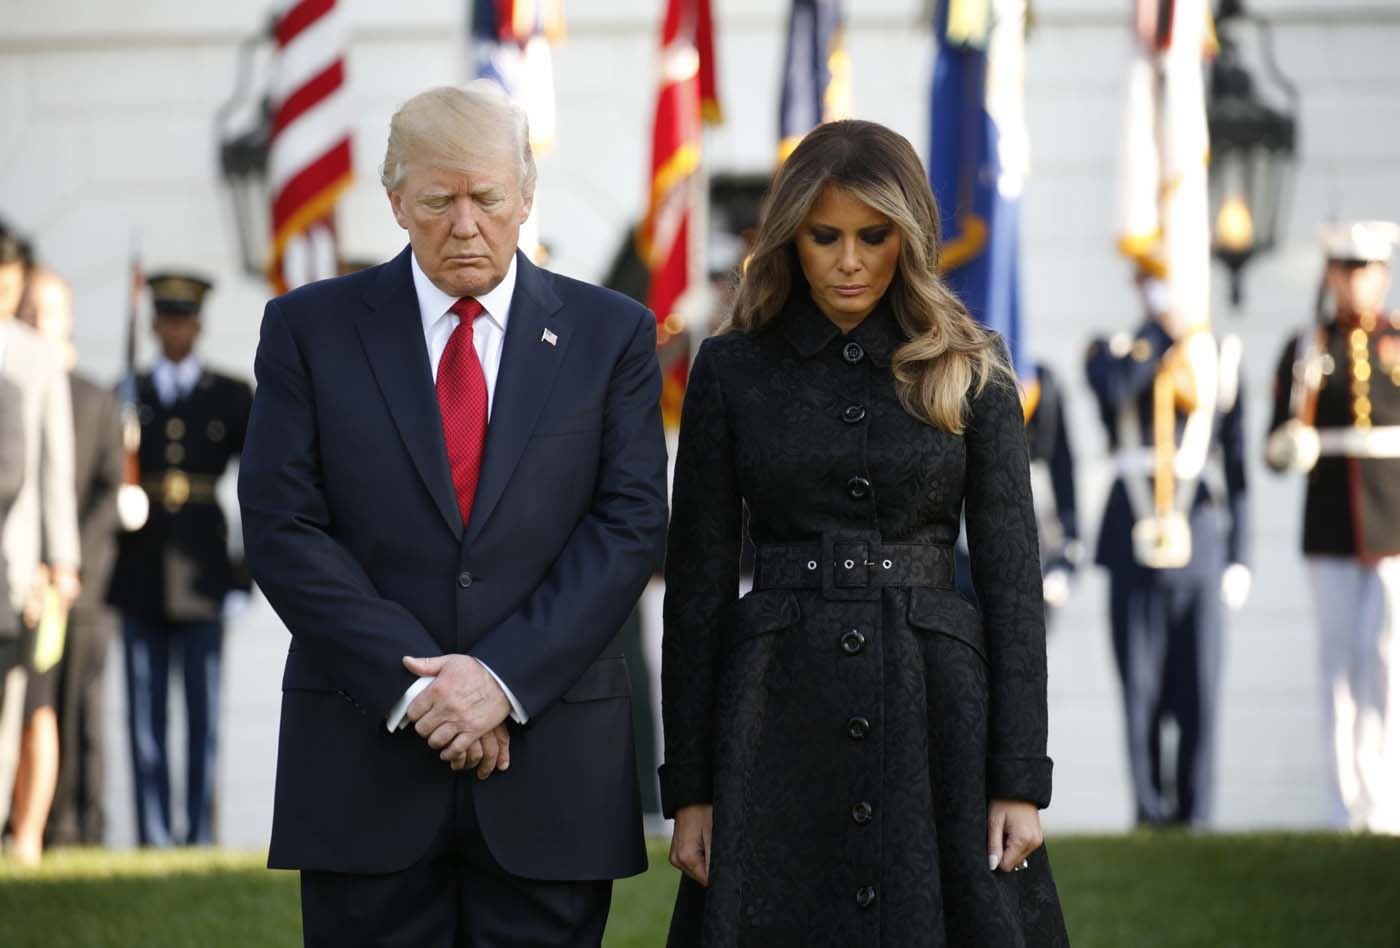 U.S. President Donald Trump and first lady Melania Trump lead a moment of silence to mark the 16th anniversary of the September 11 attacks at the White House in Washington, U.S., September 11, 2017. REUTERS/Kevin Lamarque